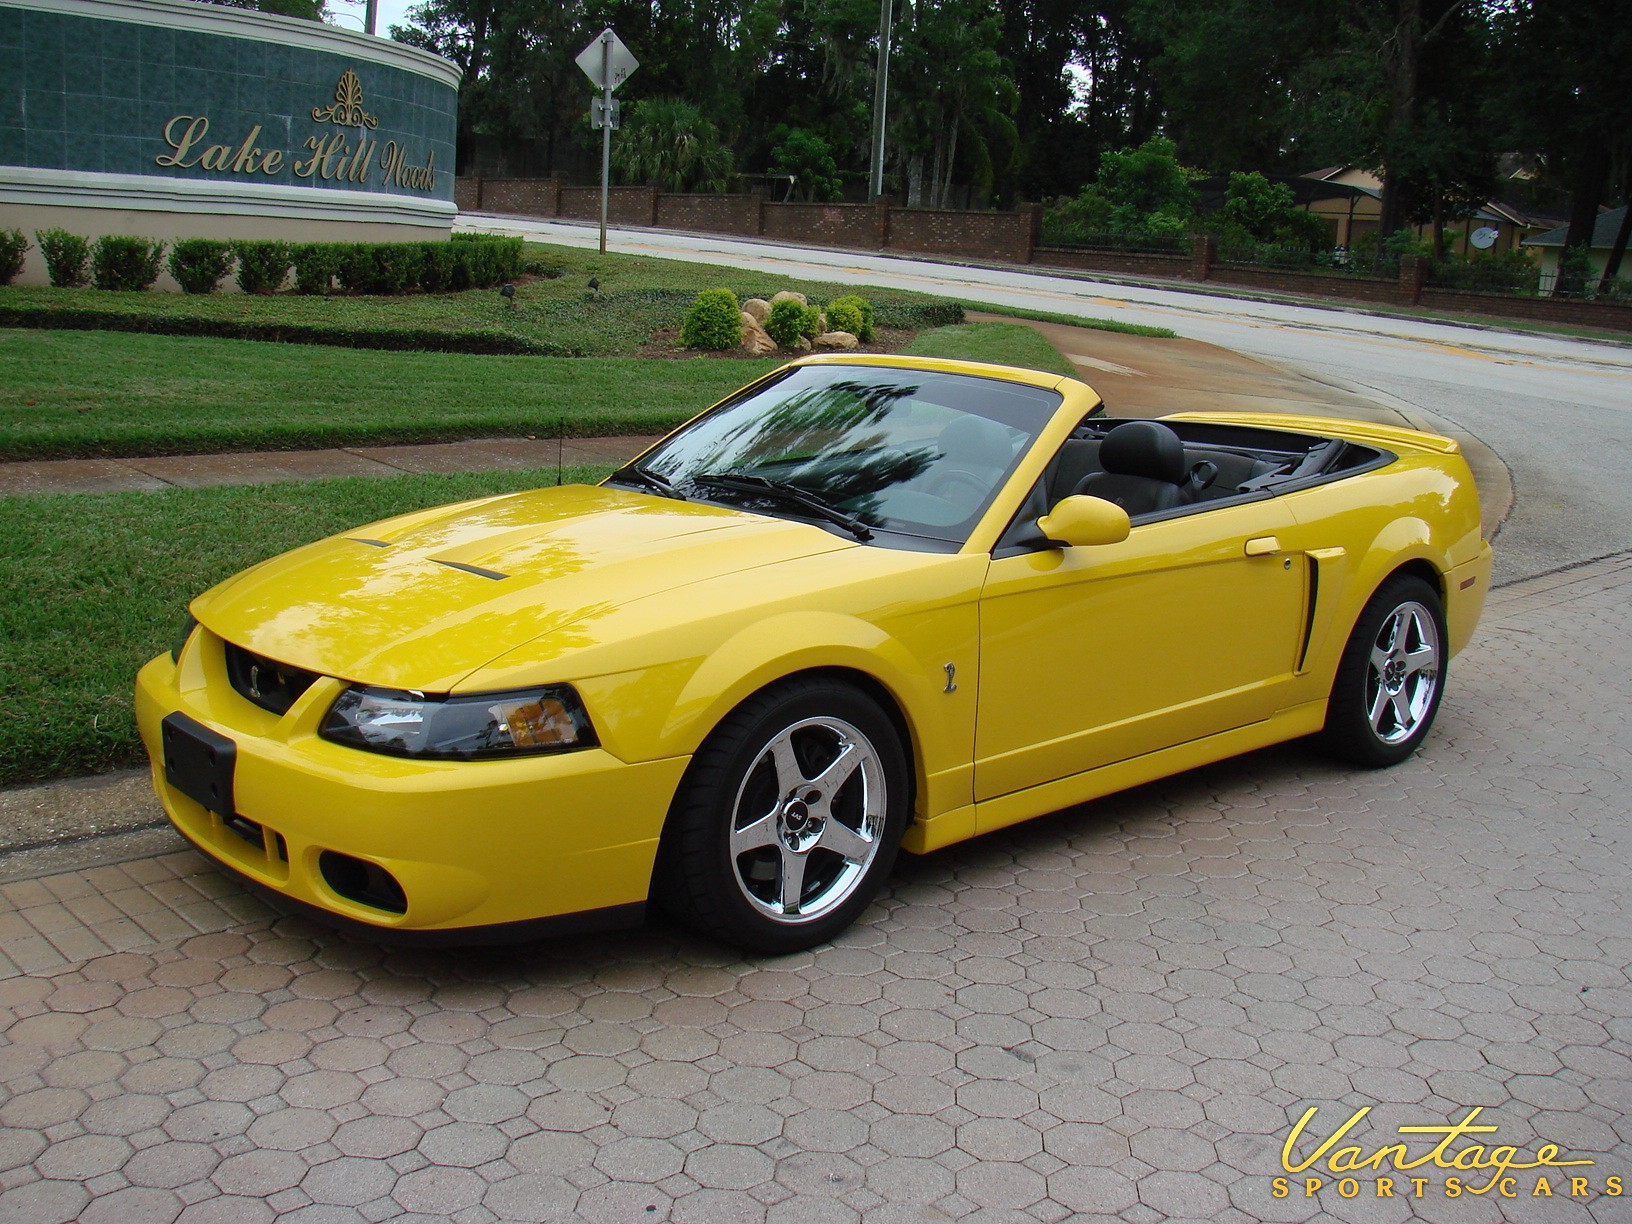 2004 Ford Mustang Cobra Convertible - SOLD! - Vantage Sports Cars | Vantage Sports Cars